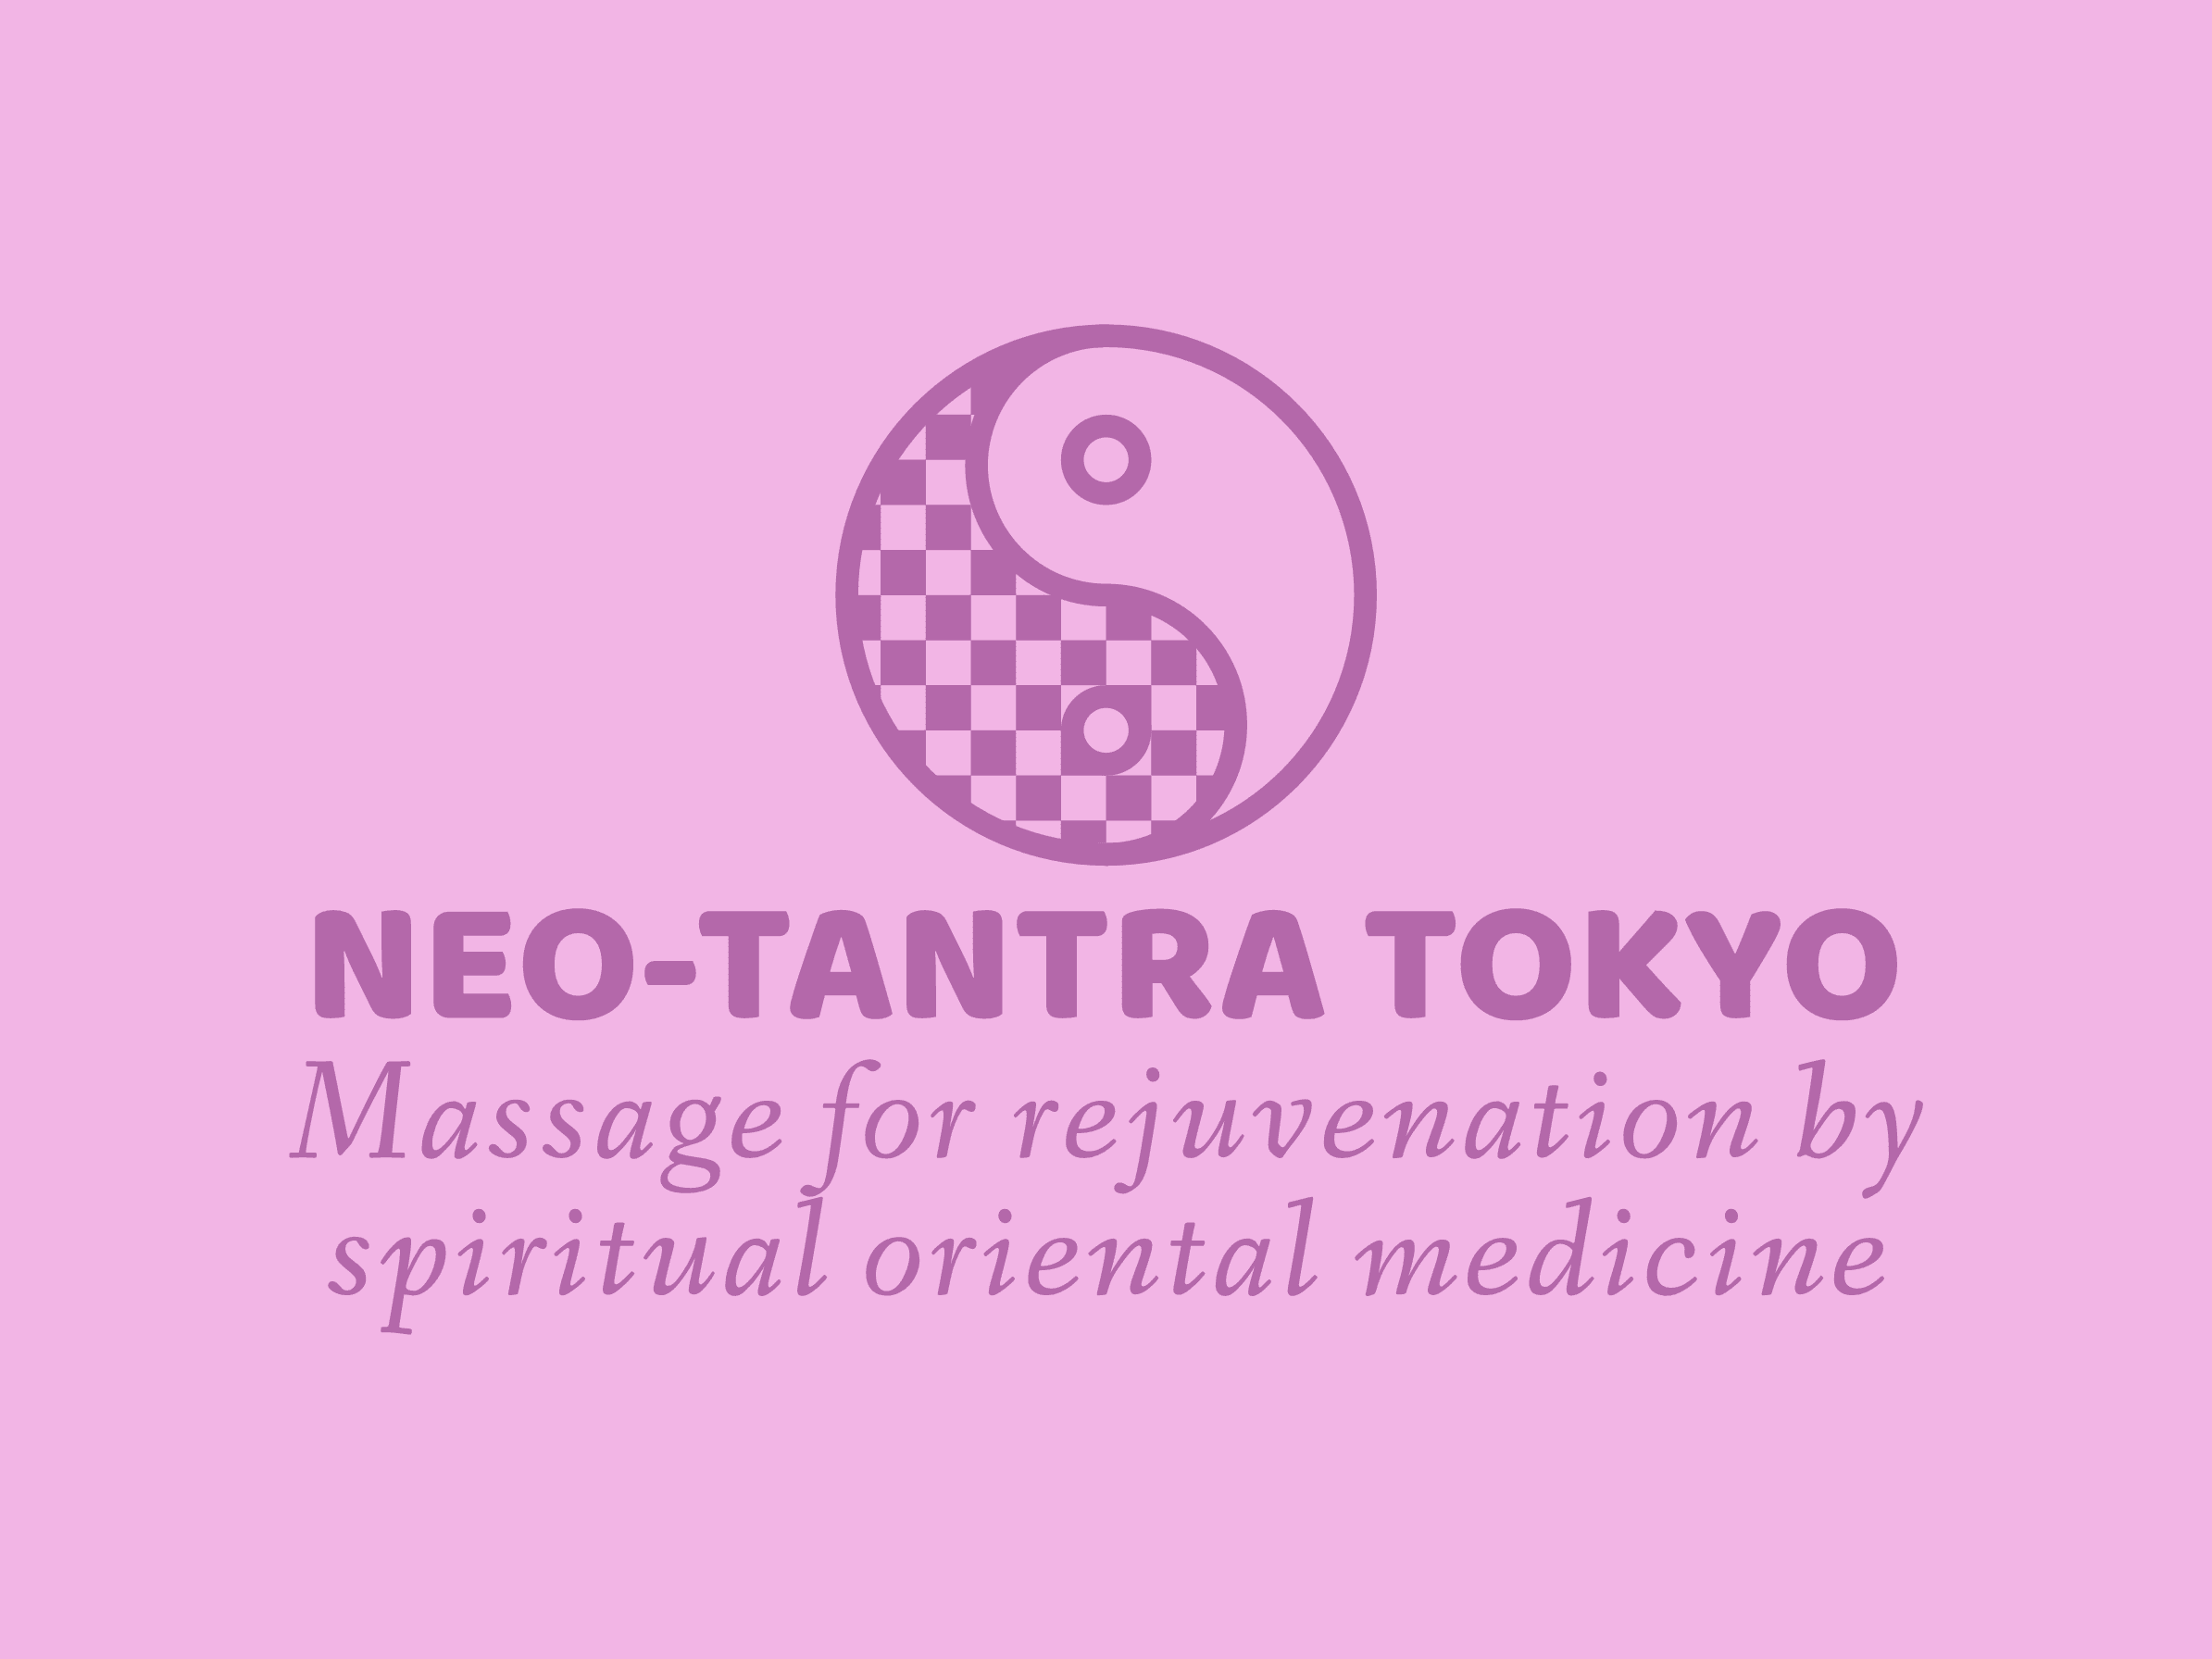 NEO-TANTRA TOKYO 【A.N.A.HOTHERU】 An outcall rejuvenating massage with happy ending based on spiritual oriental medicine.